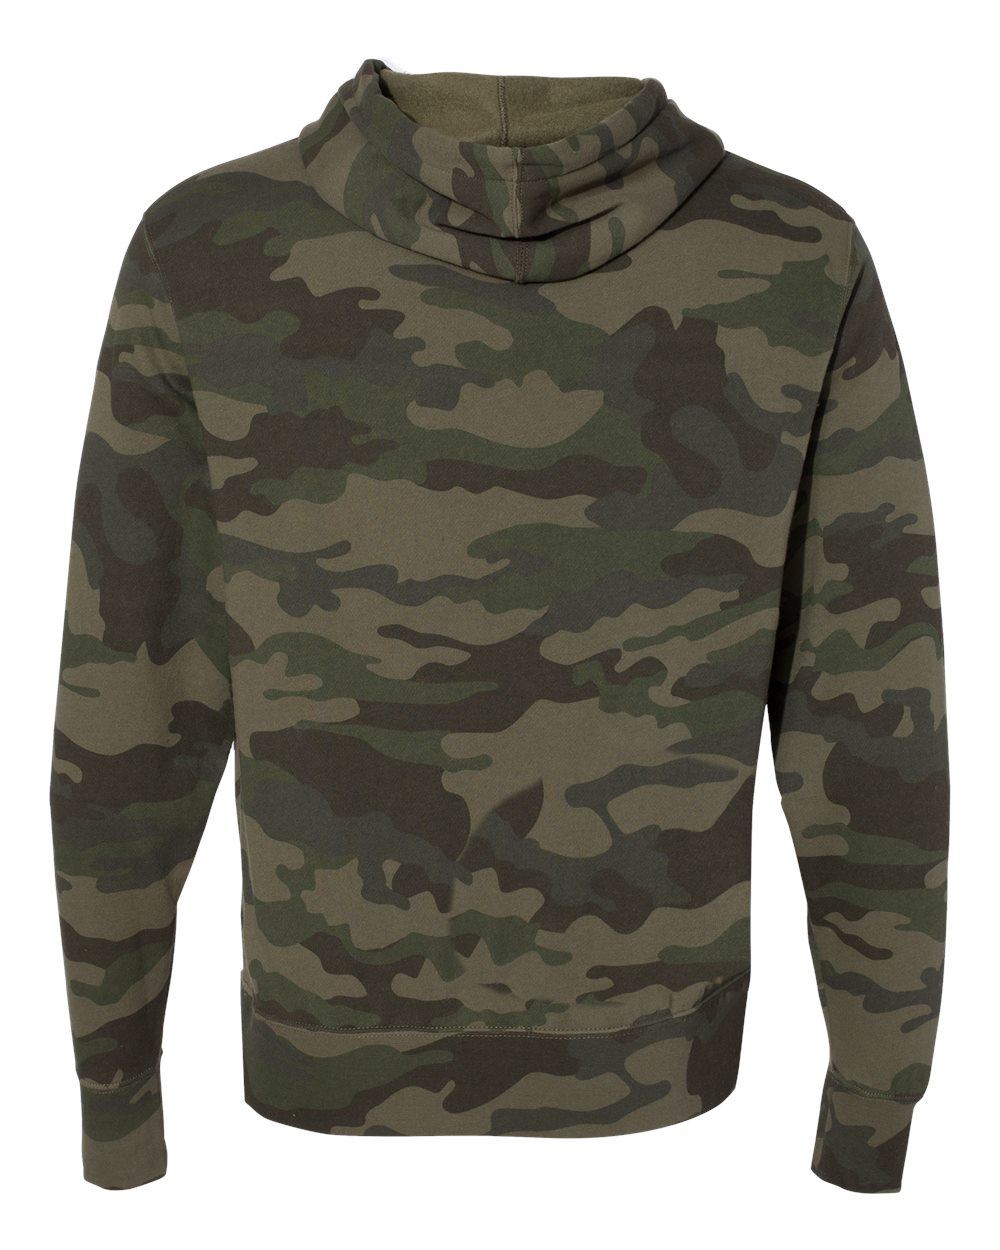 Independent-Trading-Co-Unisex-Hooded-Pullover-Blank-Plain-AFX90UN-up-to-3XL thumbnail 19